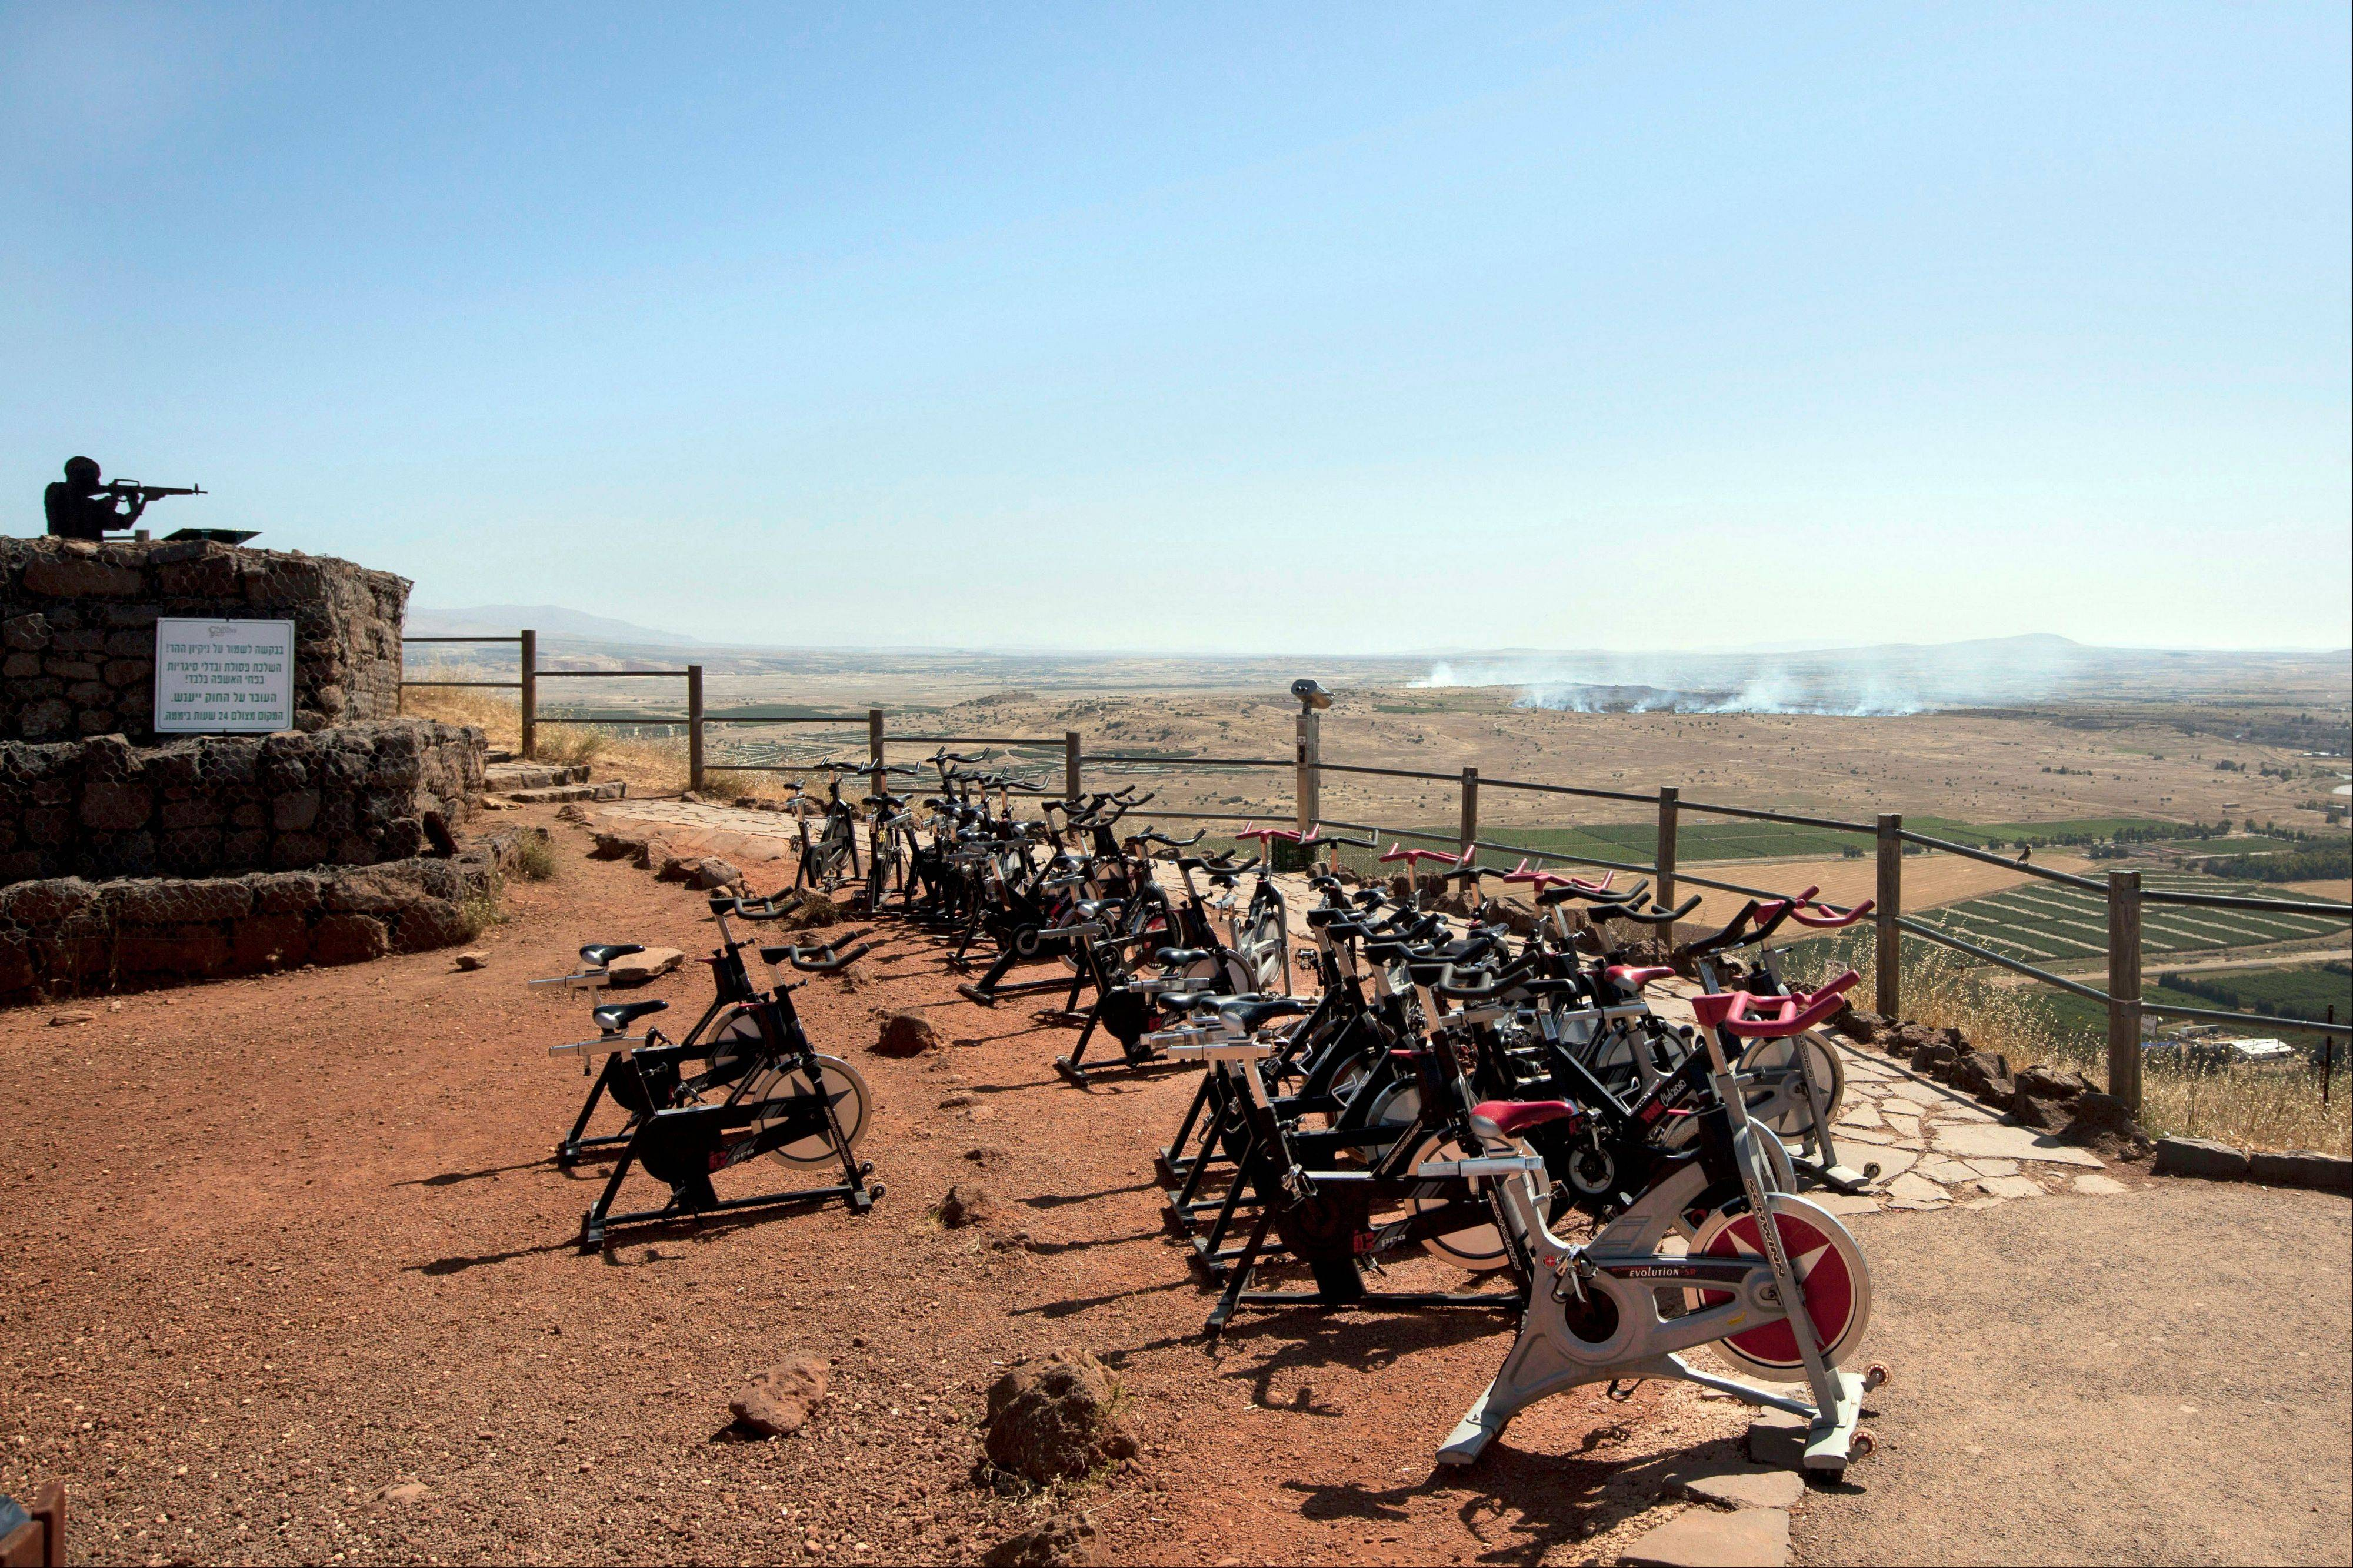 Exercise bicycles are seen Friday as smoke rises from fighting in Syria as seen from an observation point on Mt. Bental in the Golan Heights. Syrian rebels on Thursday briefly captured a crossing point along a cease-fire line with Israel in the contested Golan Heights.